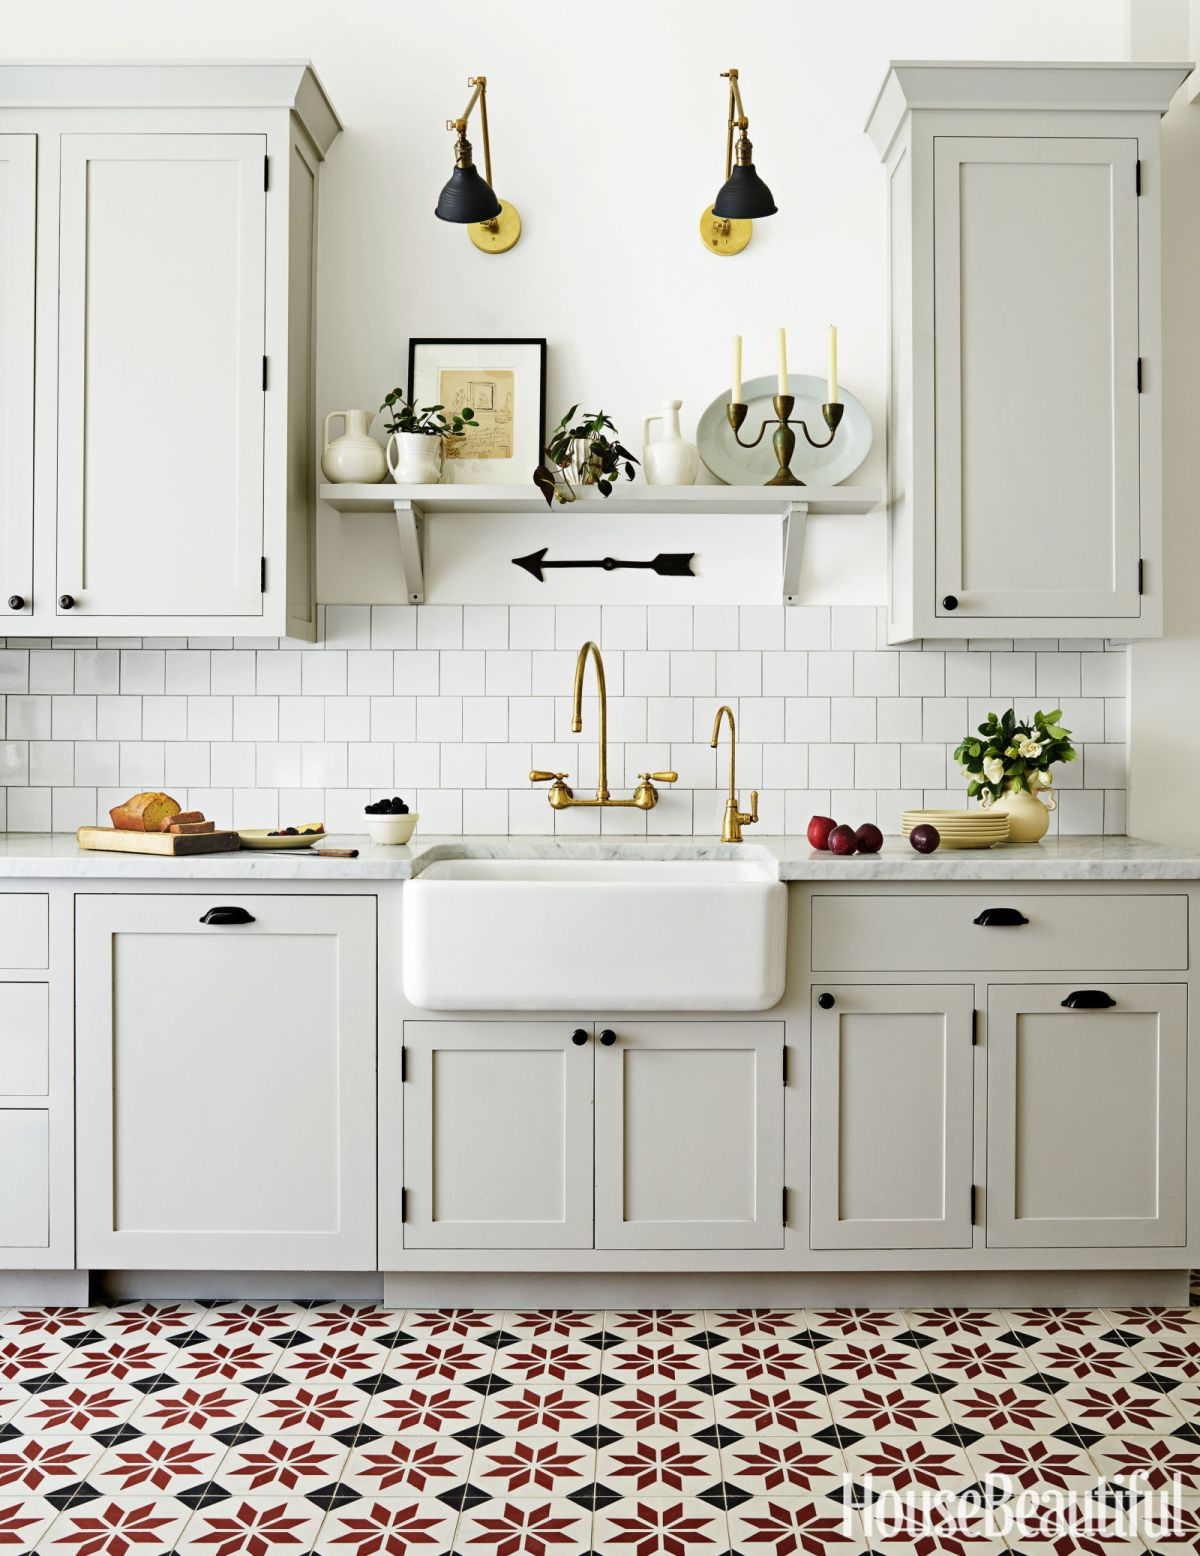 18 Beautiful Examples Of Kitchen Floor Tile. Painted Kitchen Cabinets Before And After. Wood Kitchen Storage Cabinets. I Kitchen Cabinet. Kitchen Cabinet Carcases. White Wash Kitchen Cabinets. Designer Kitchens With White Cabinets. How To Attach Kitchen Cabinets Together. Cost Refacing Kitchen Cabinets